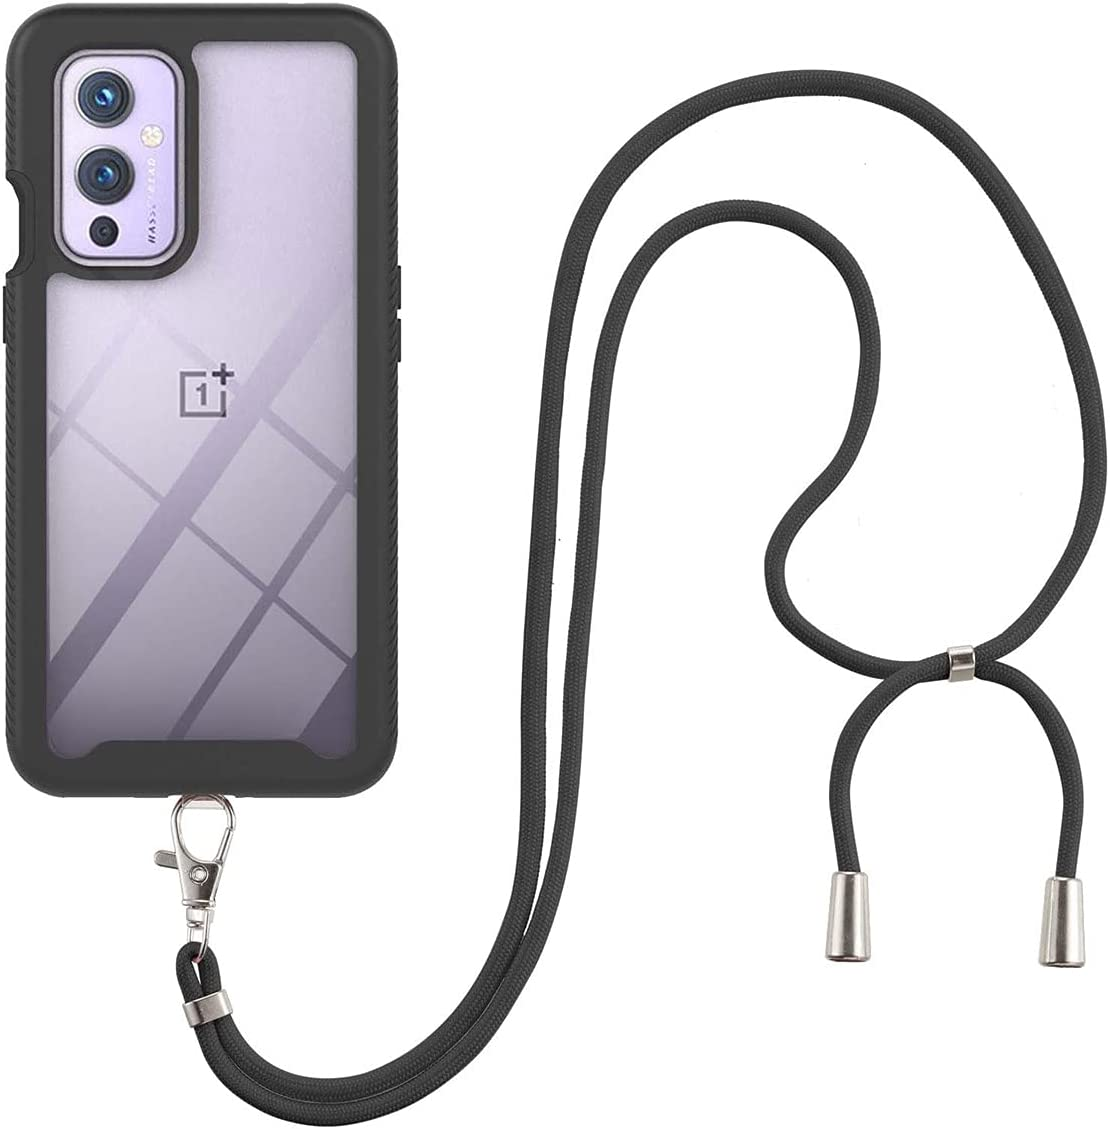 OnePlus 9 Case, Gift_Source Slim Shockproof Crossbody Case 2 in 1 Soft Silicone Bumper and Clear Hard PC Back Cover Shell with Adjustable Lanyard Neck Strap for OnePlus 9 (6.55